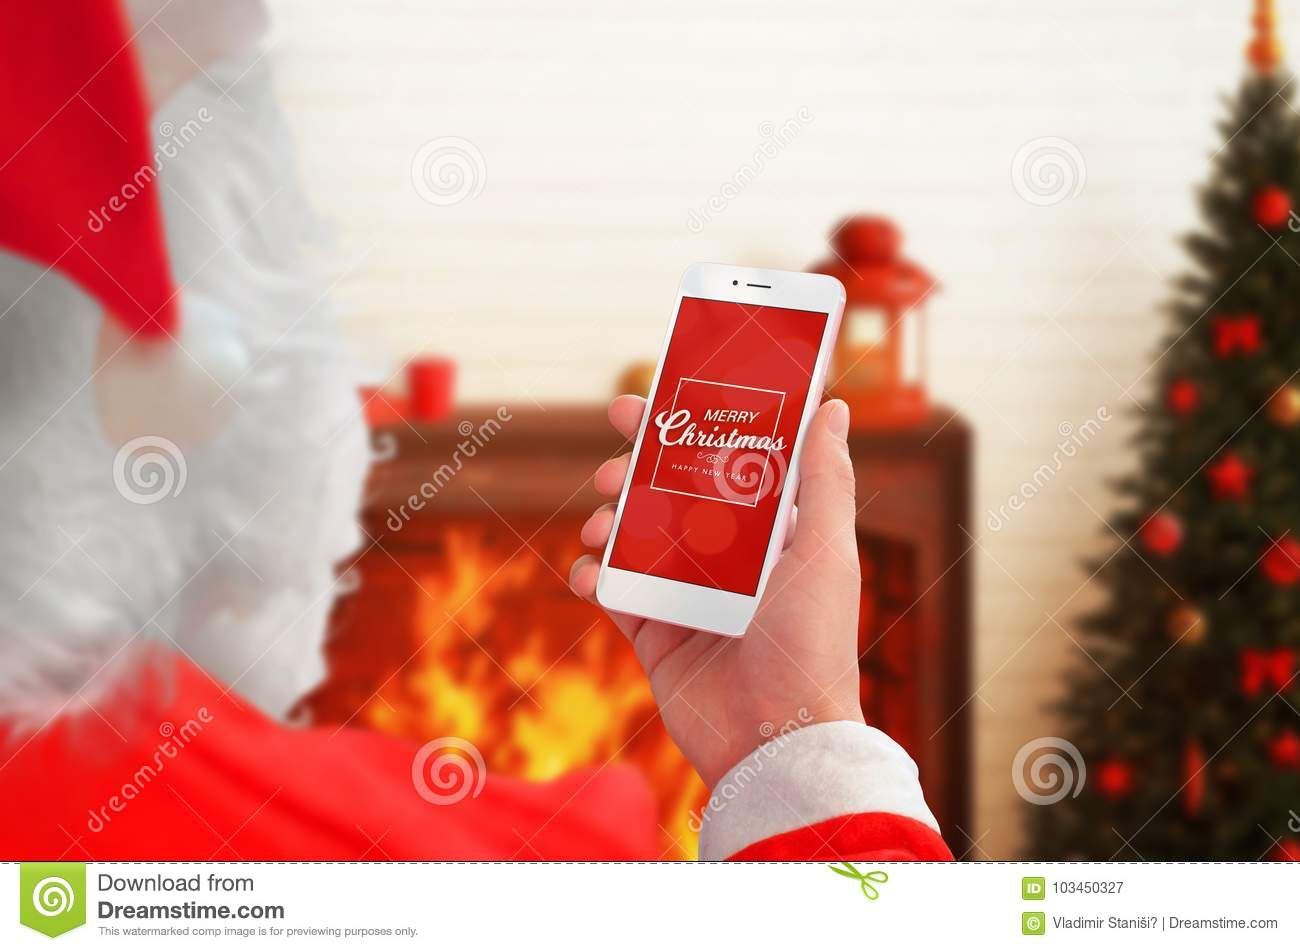 Santa Claus Holding Mobile Phone With Christmas Greeting On Display